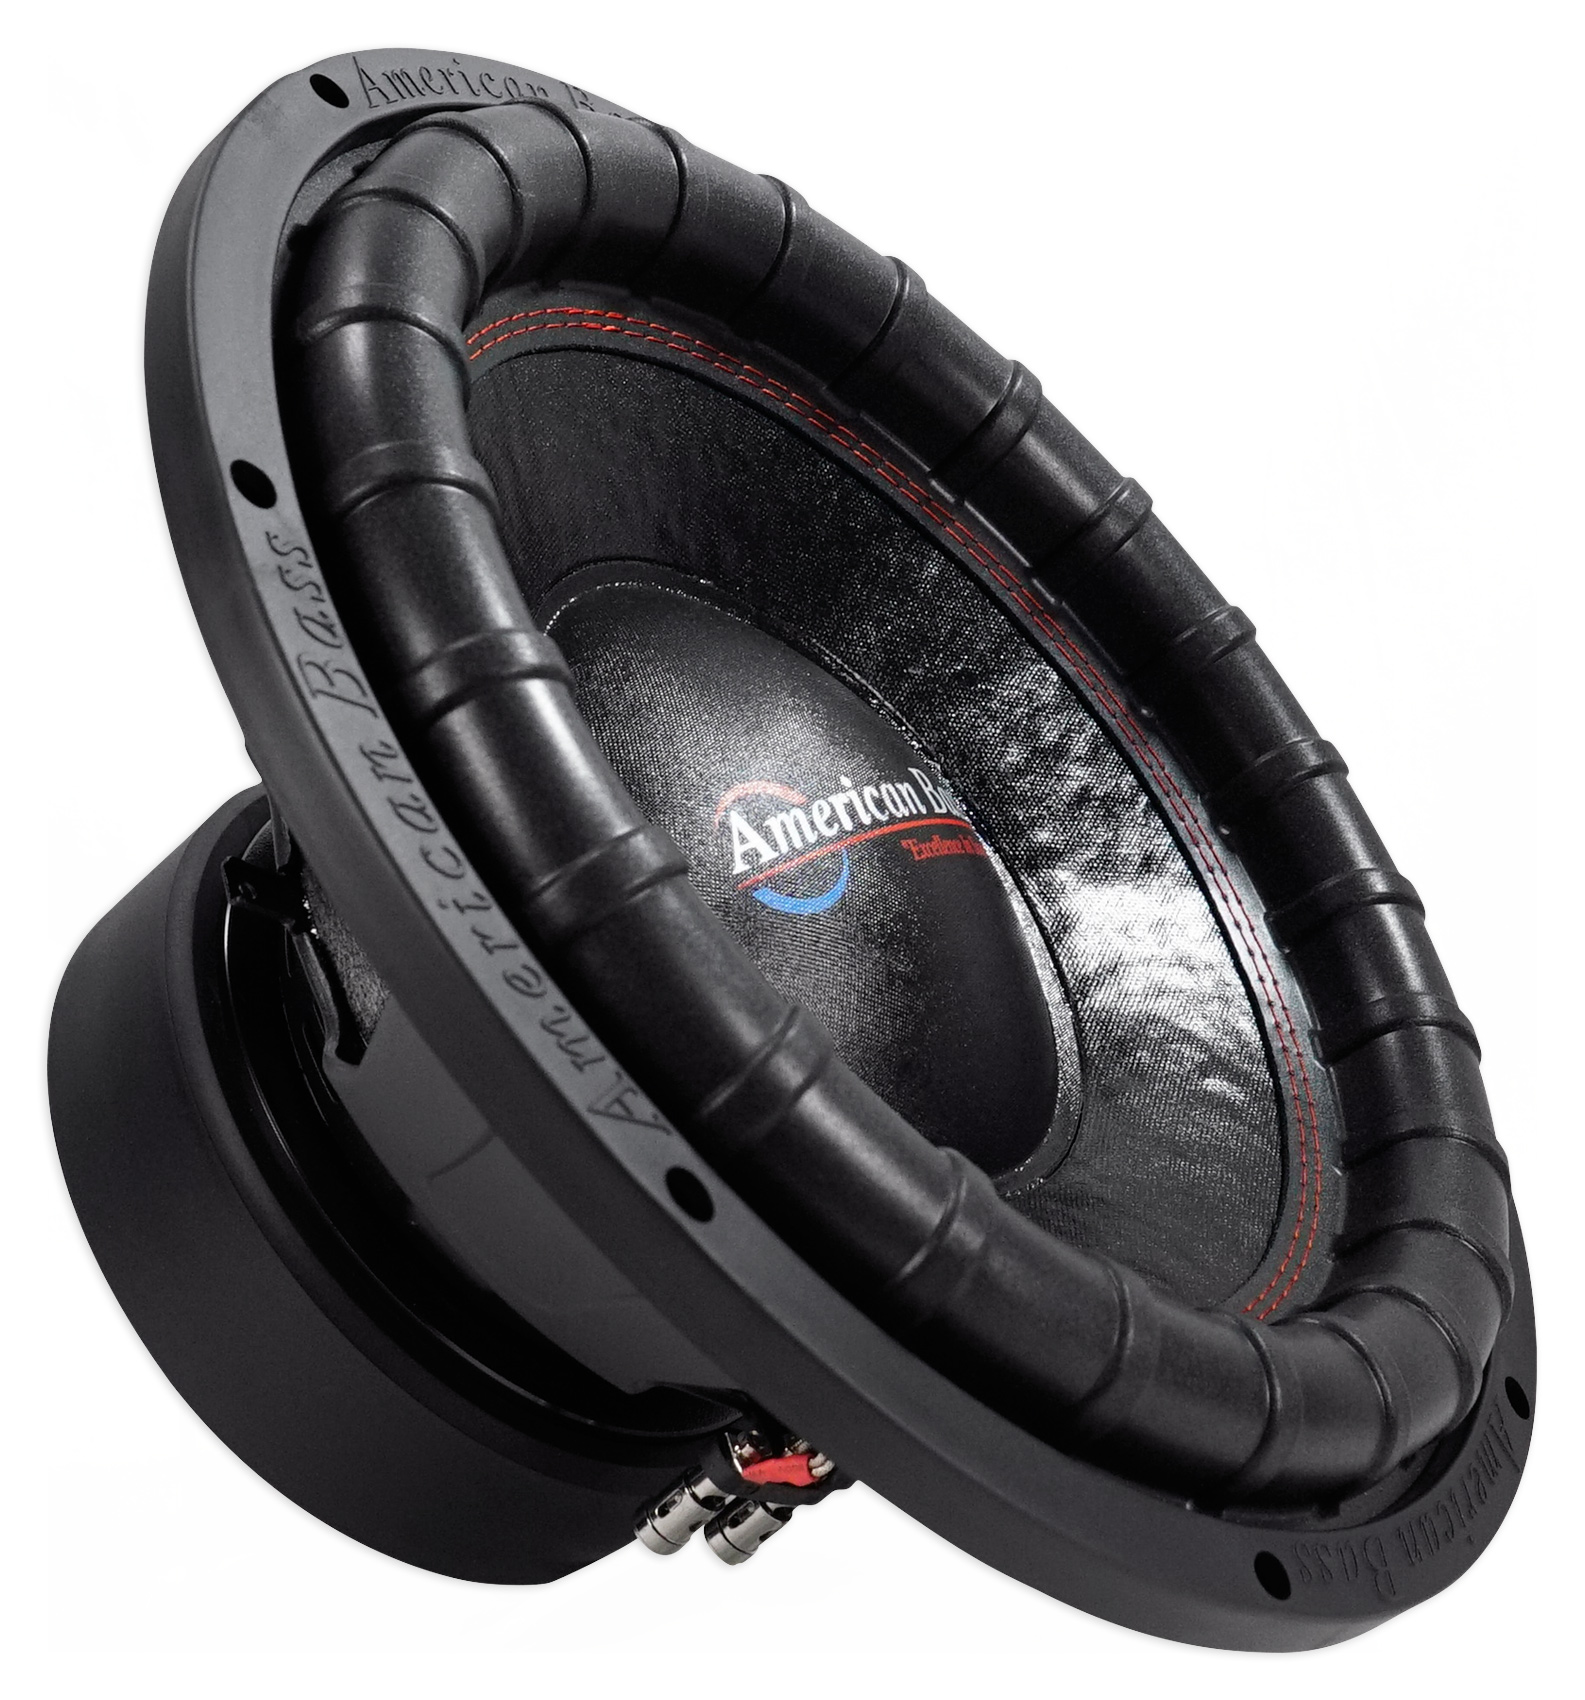 Rockville RVL69W 6x9 300w Competition Cast Aluminum Car Subwoofer Mid-Bass+Lows Audiosavings